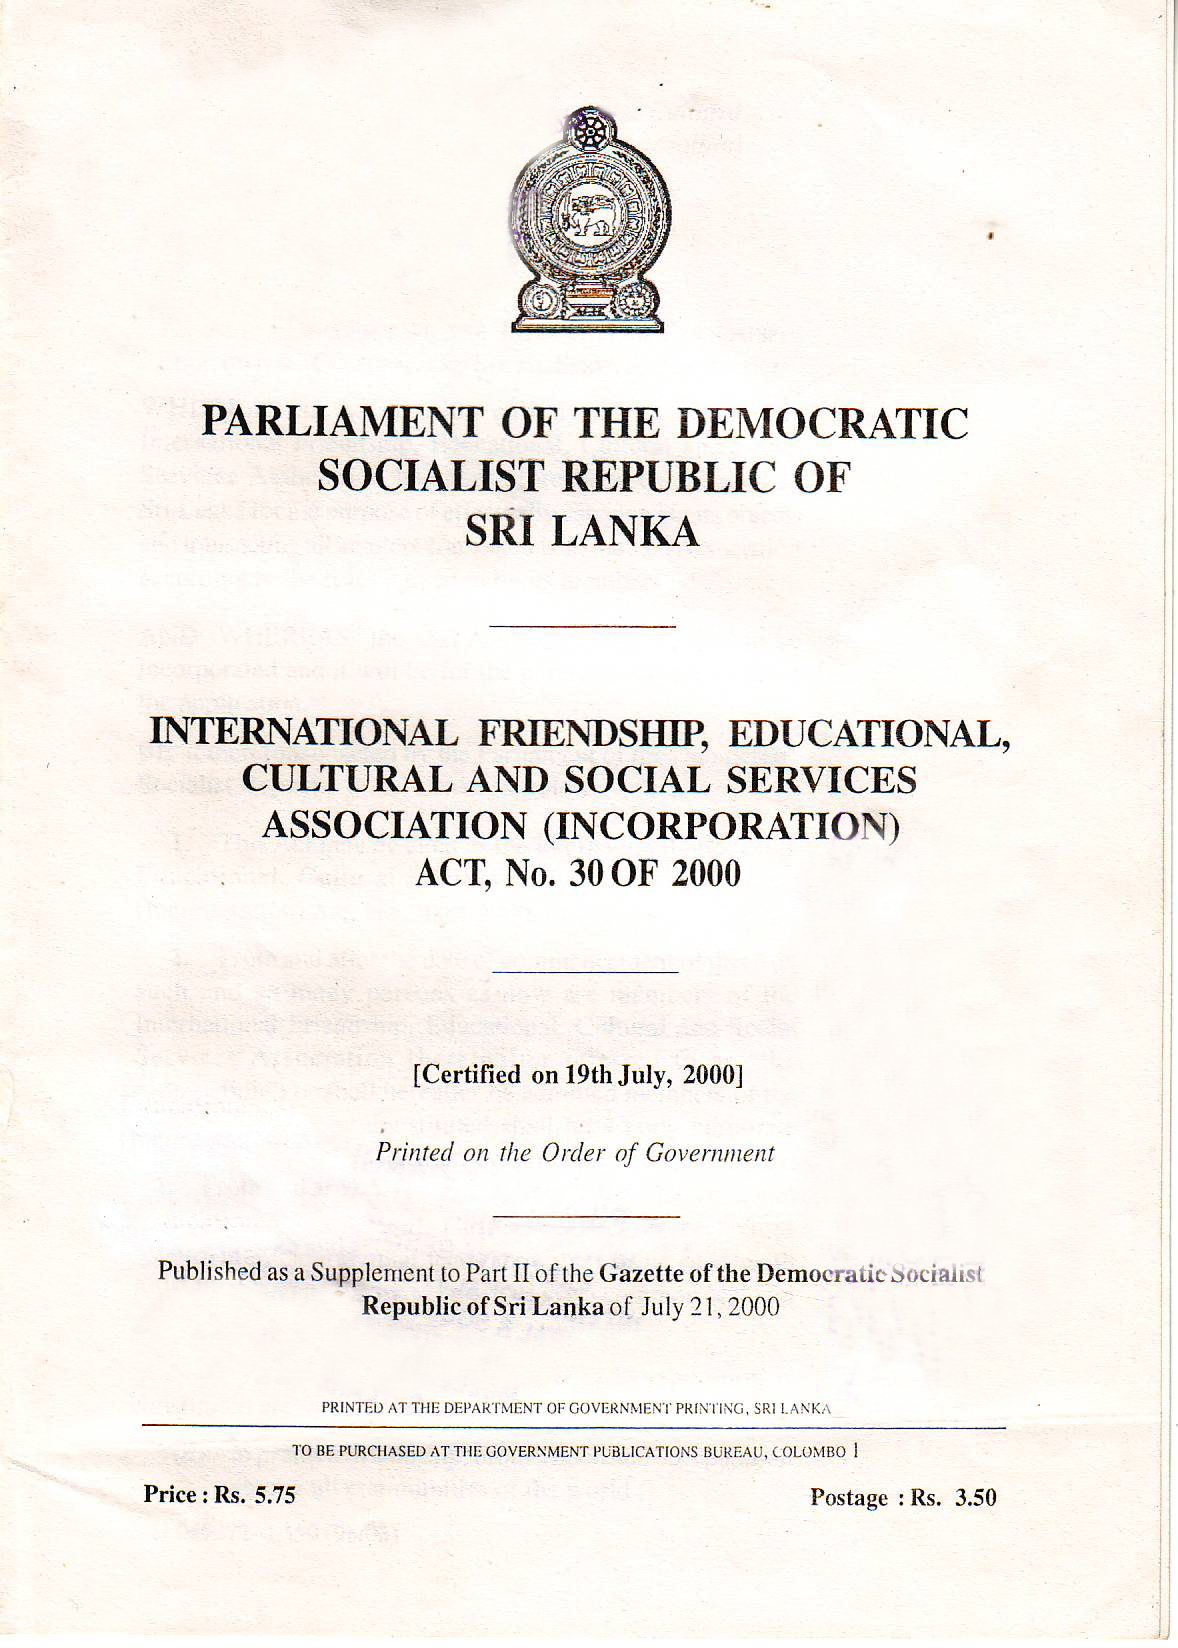 Certification of Parliment